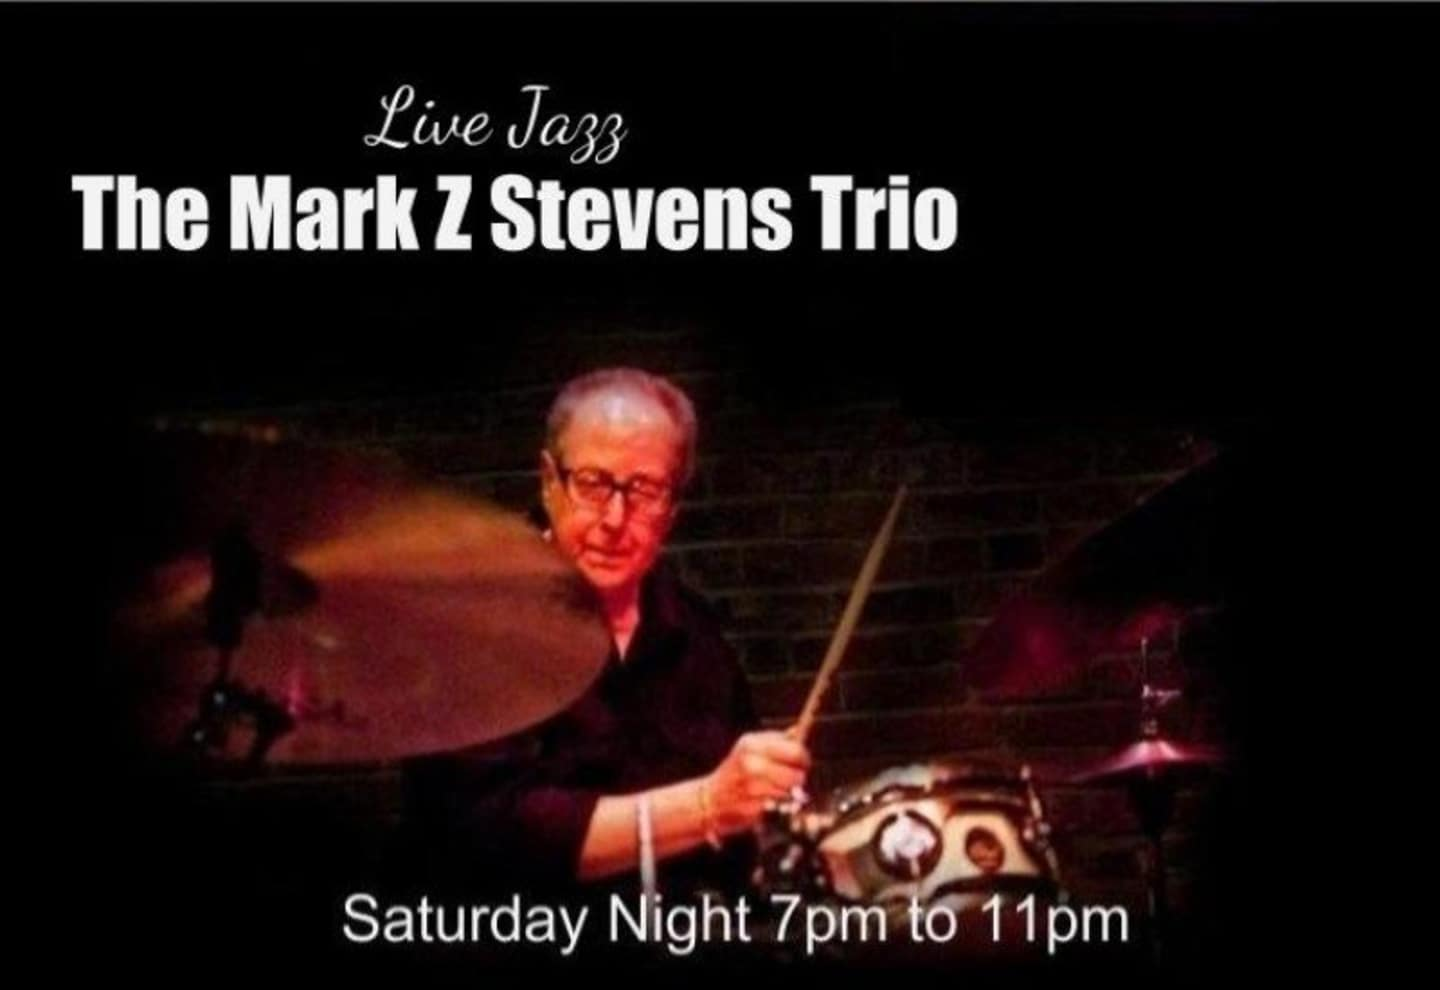 The Mark Z Stevens Trio